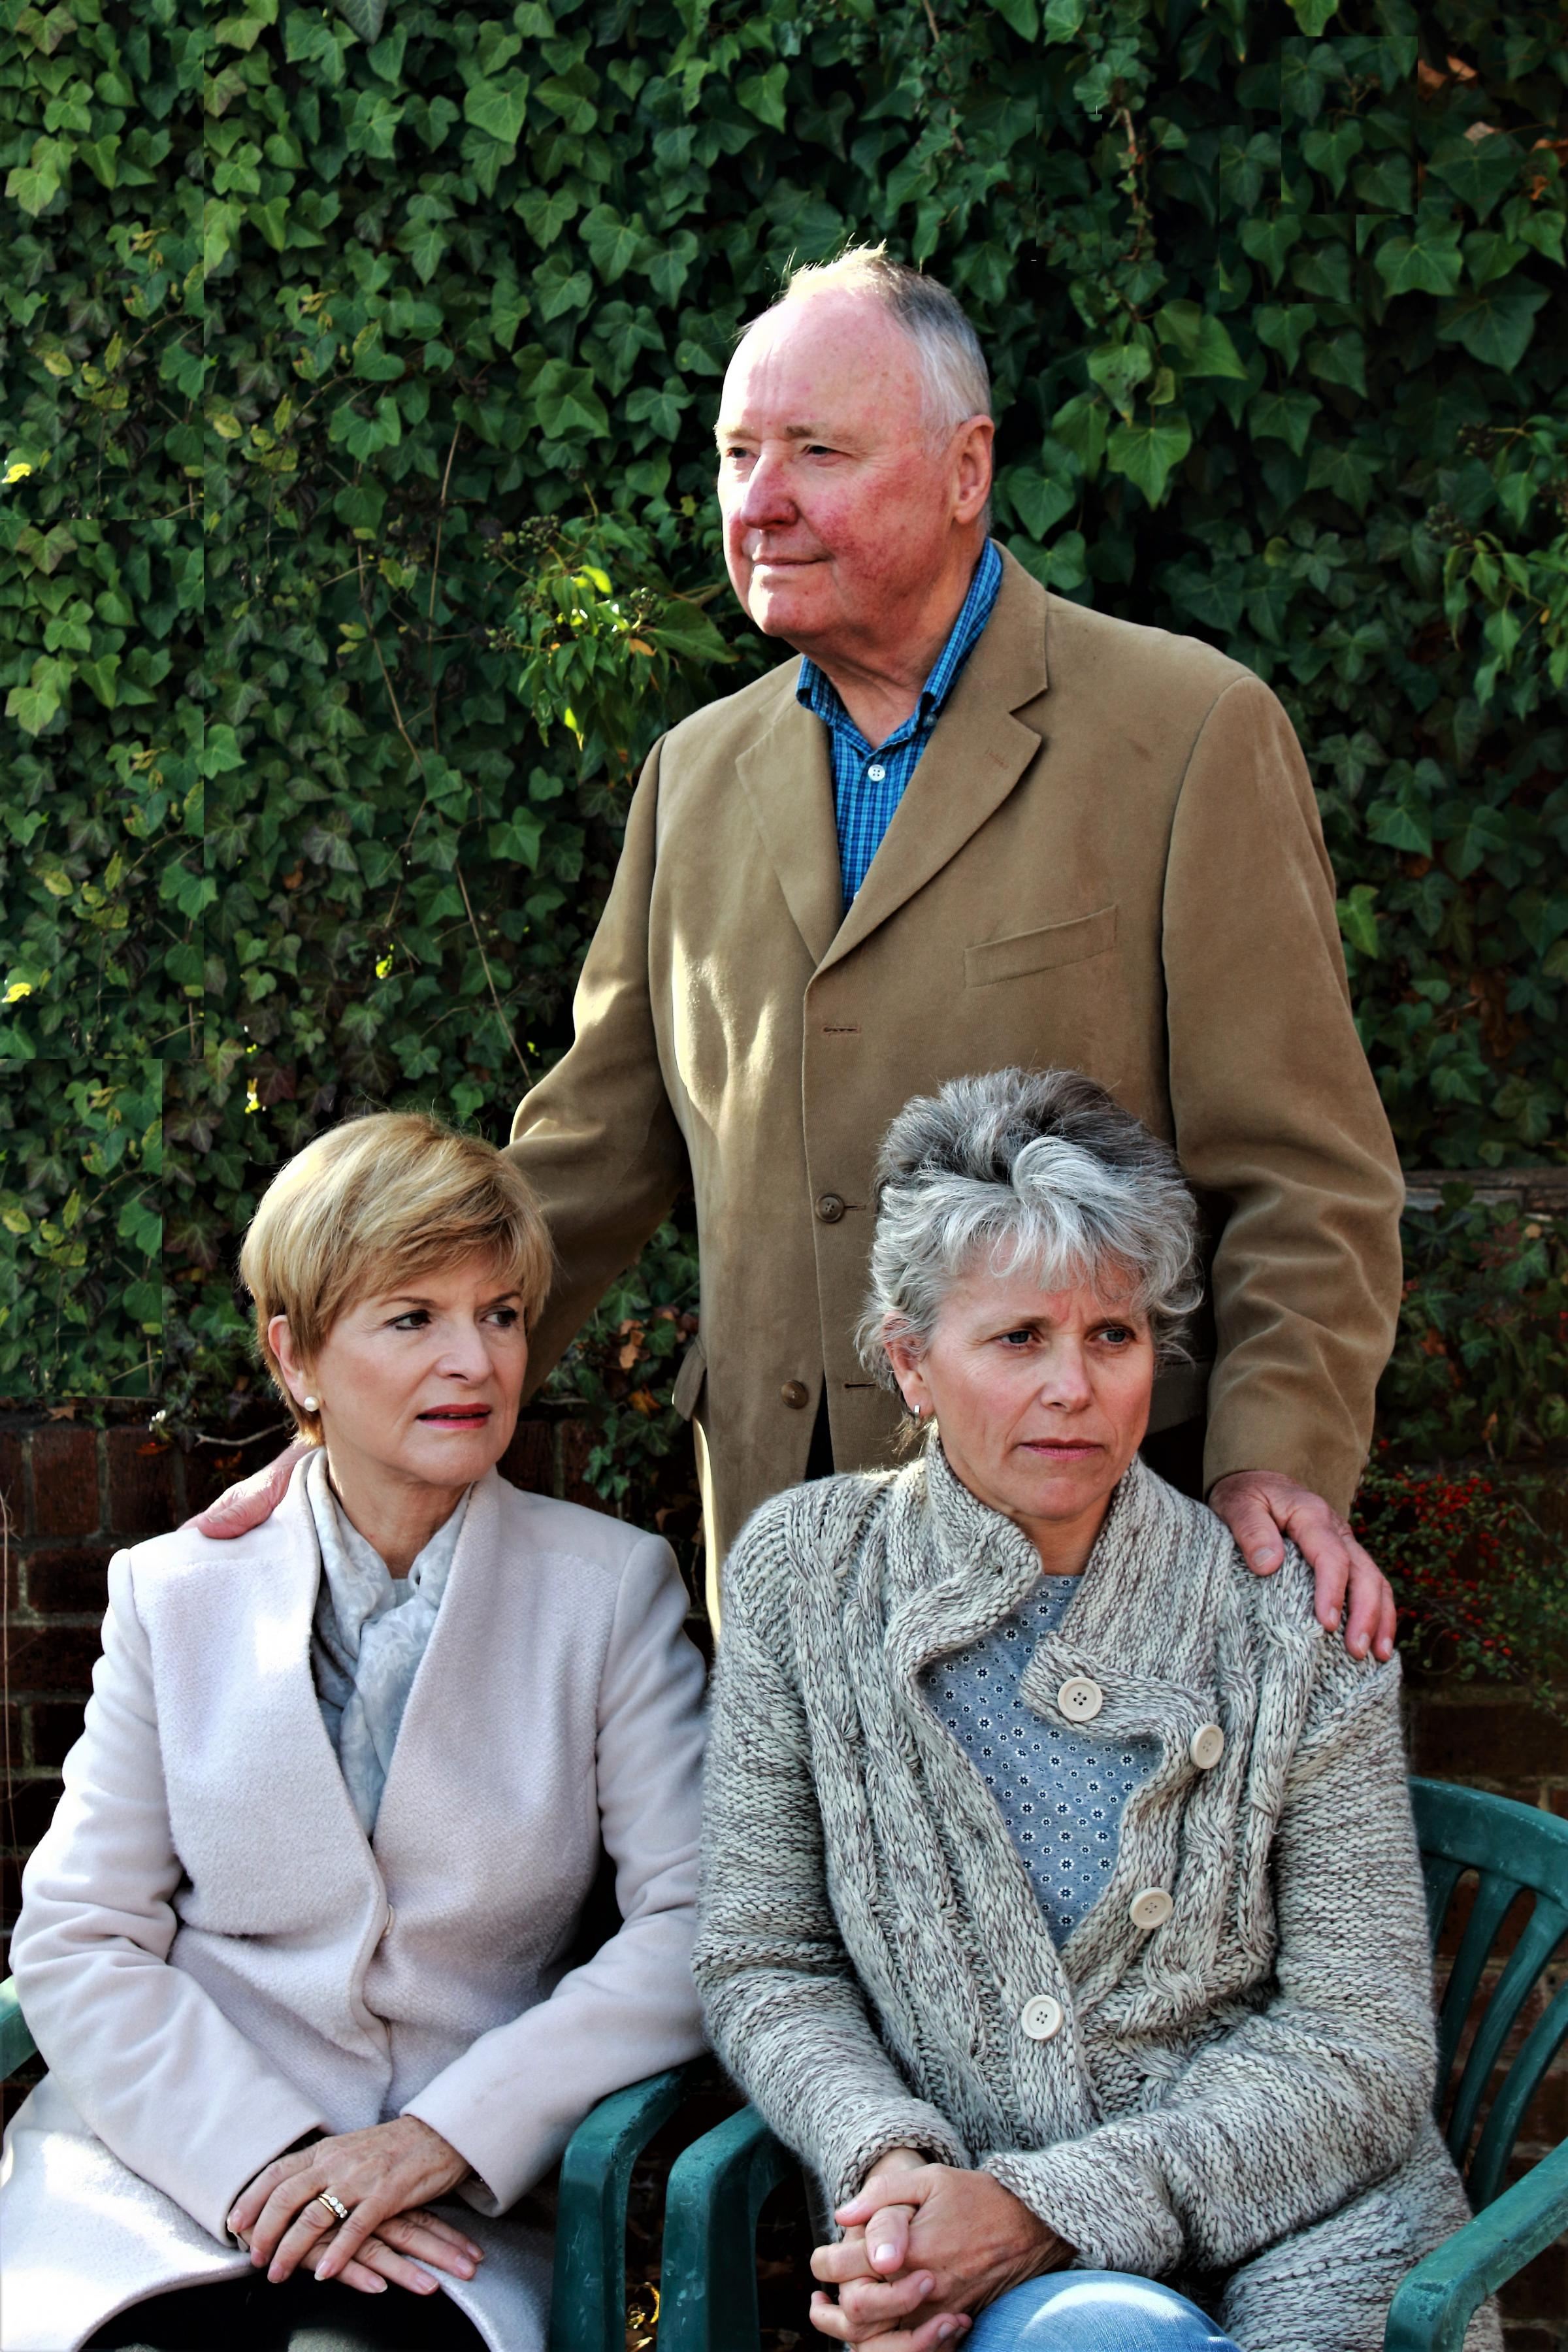 Entertaining Angels cast left to right: Sue Taylor (Grace), Derek Perry (Bardolph) and Bettie Heckford (Ruth)